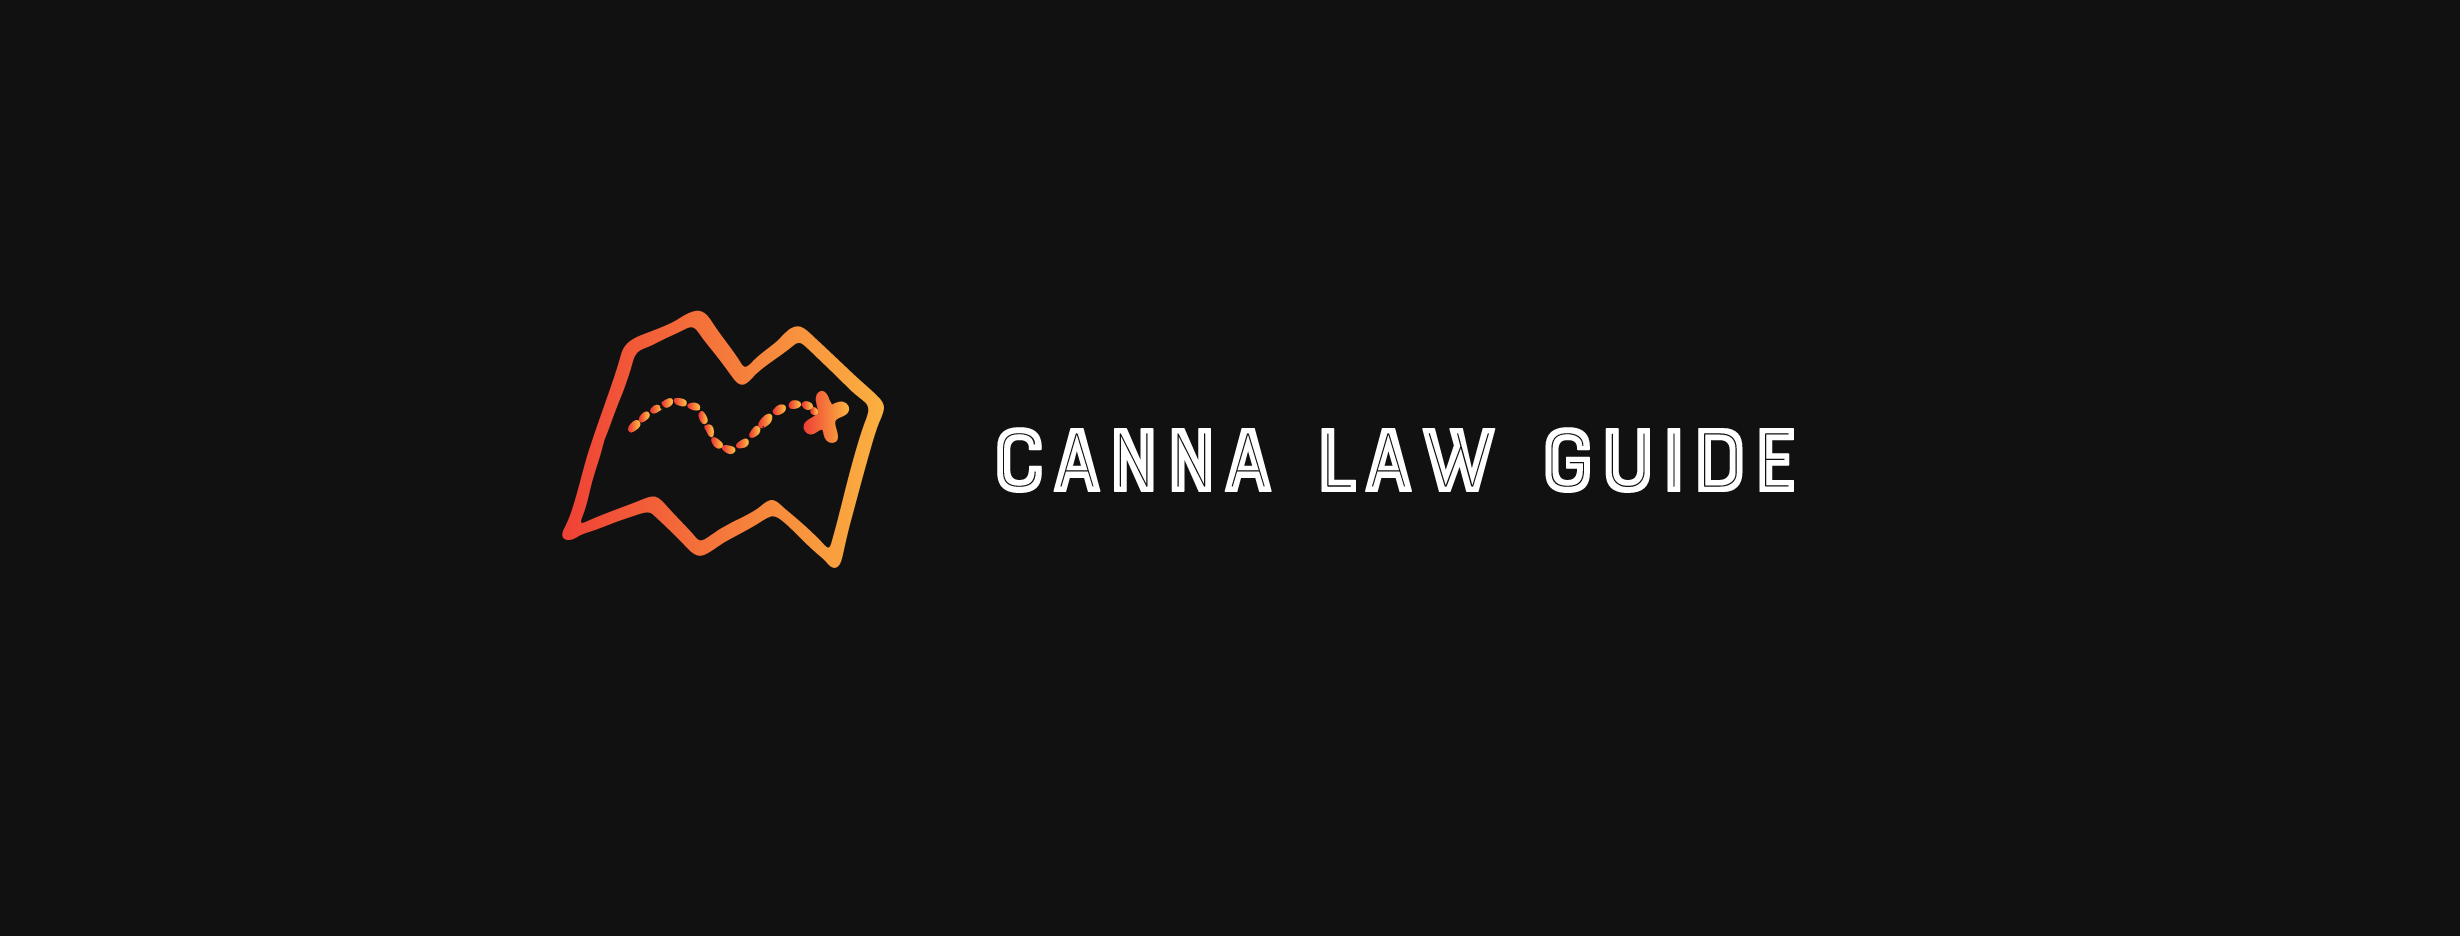 Canna Law Guide FB Cover Photo